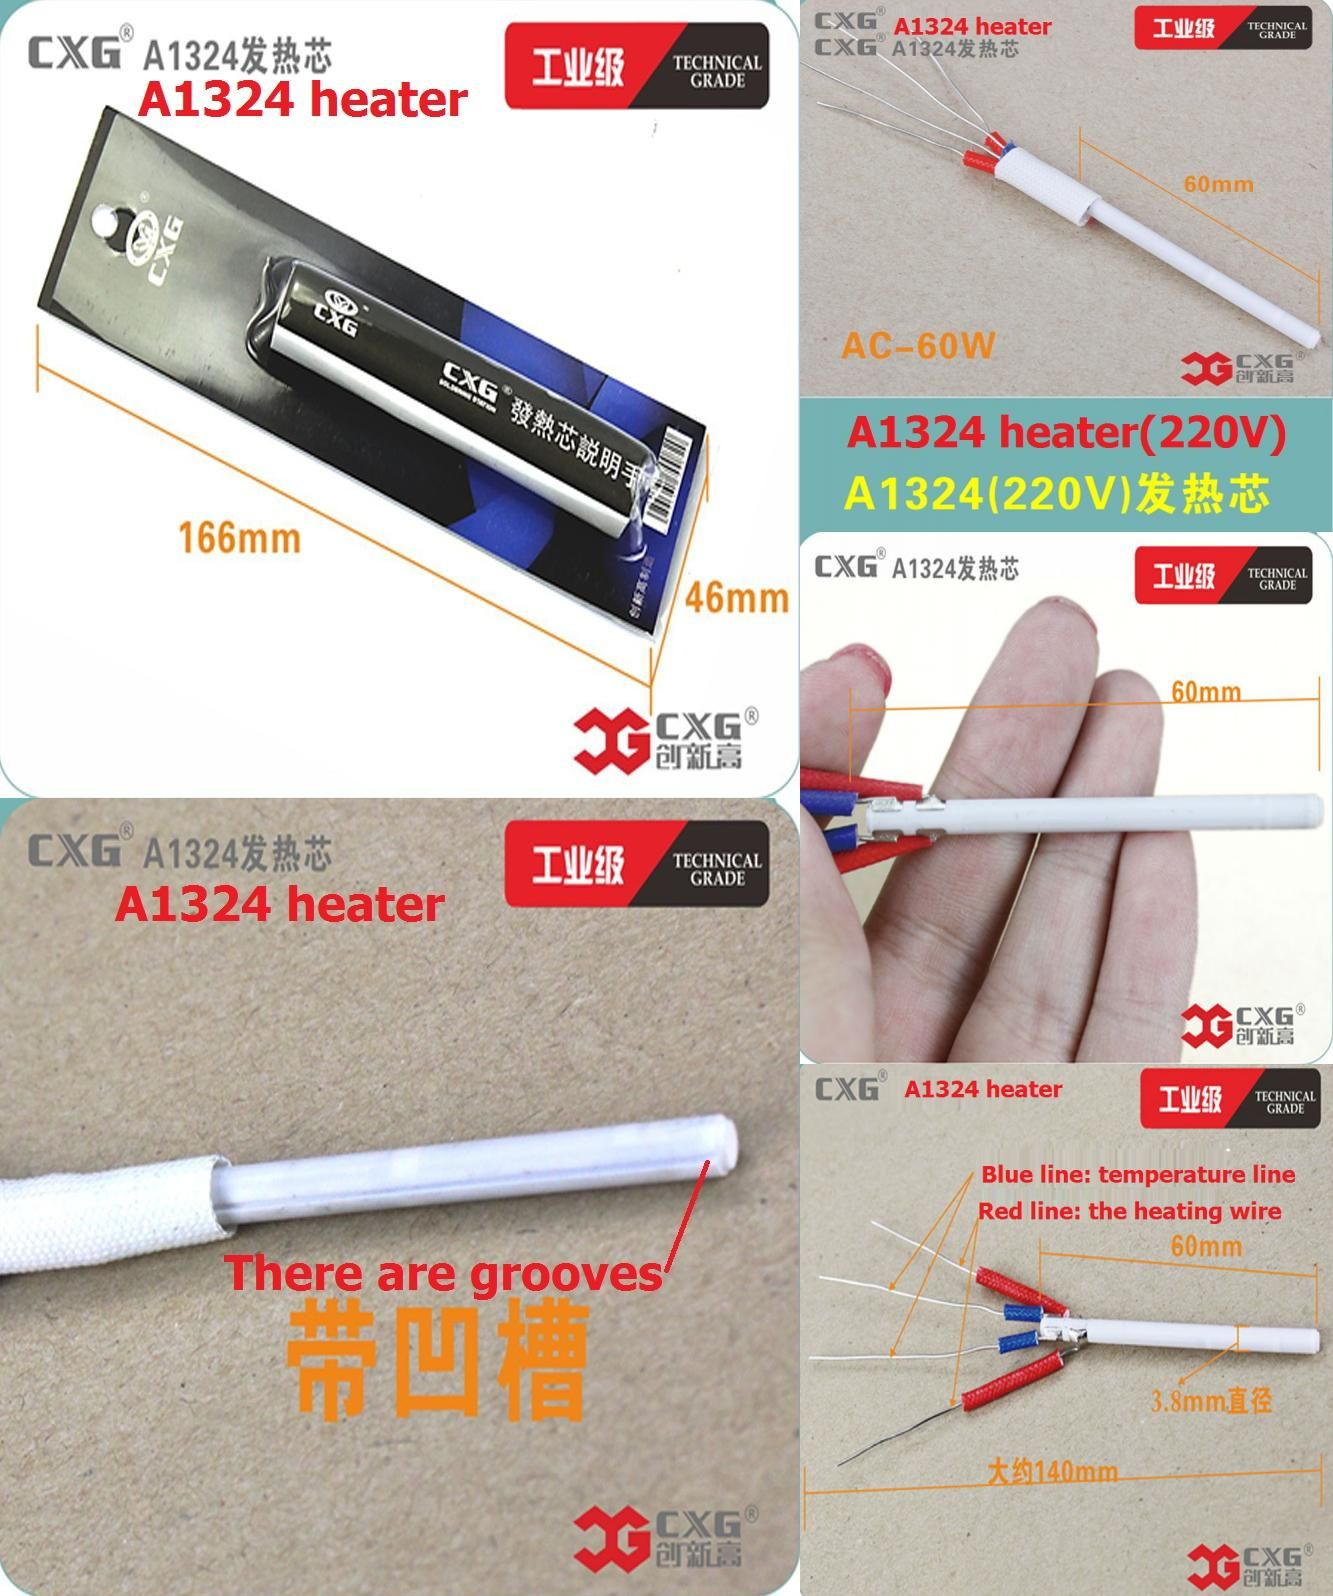 Visit To Buy Cxg A1324 220v 60w Ceramic Heater Heating Element For Cxg 936d Cxg 936d Soldering Iron Heating S Ceramic Heater Soldering Iron Heating Element